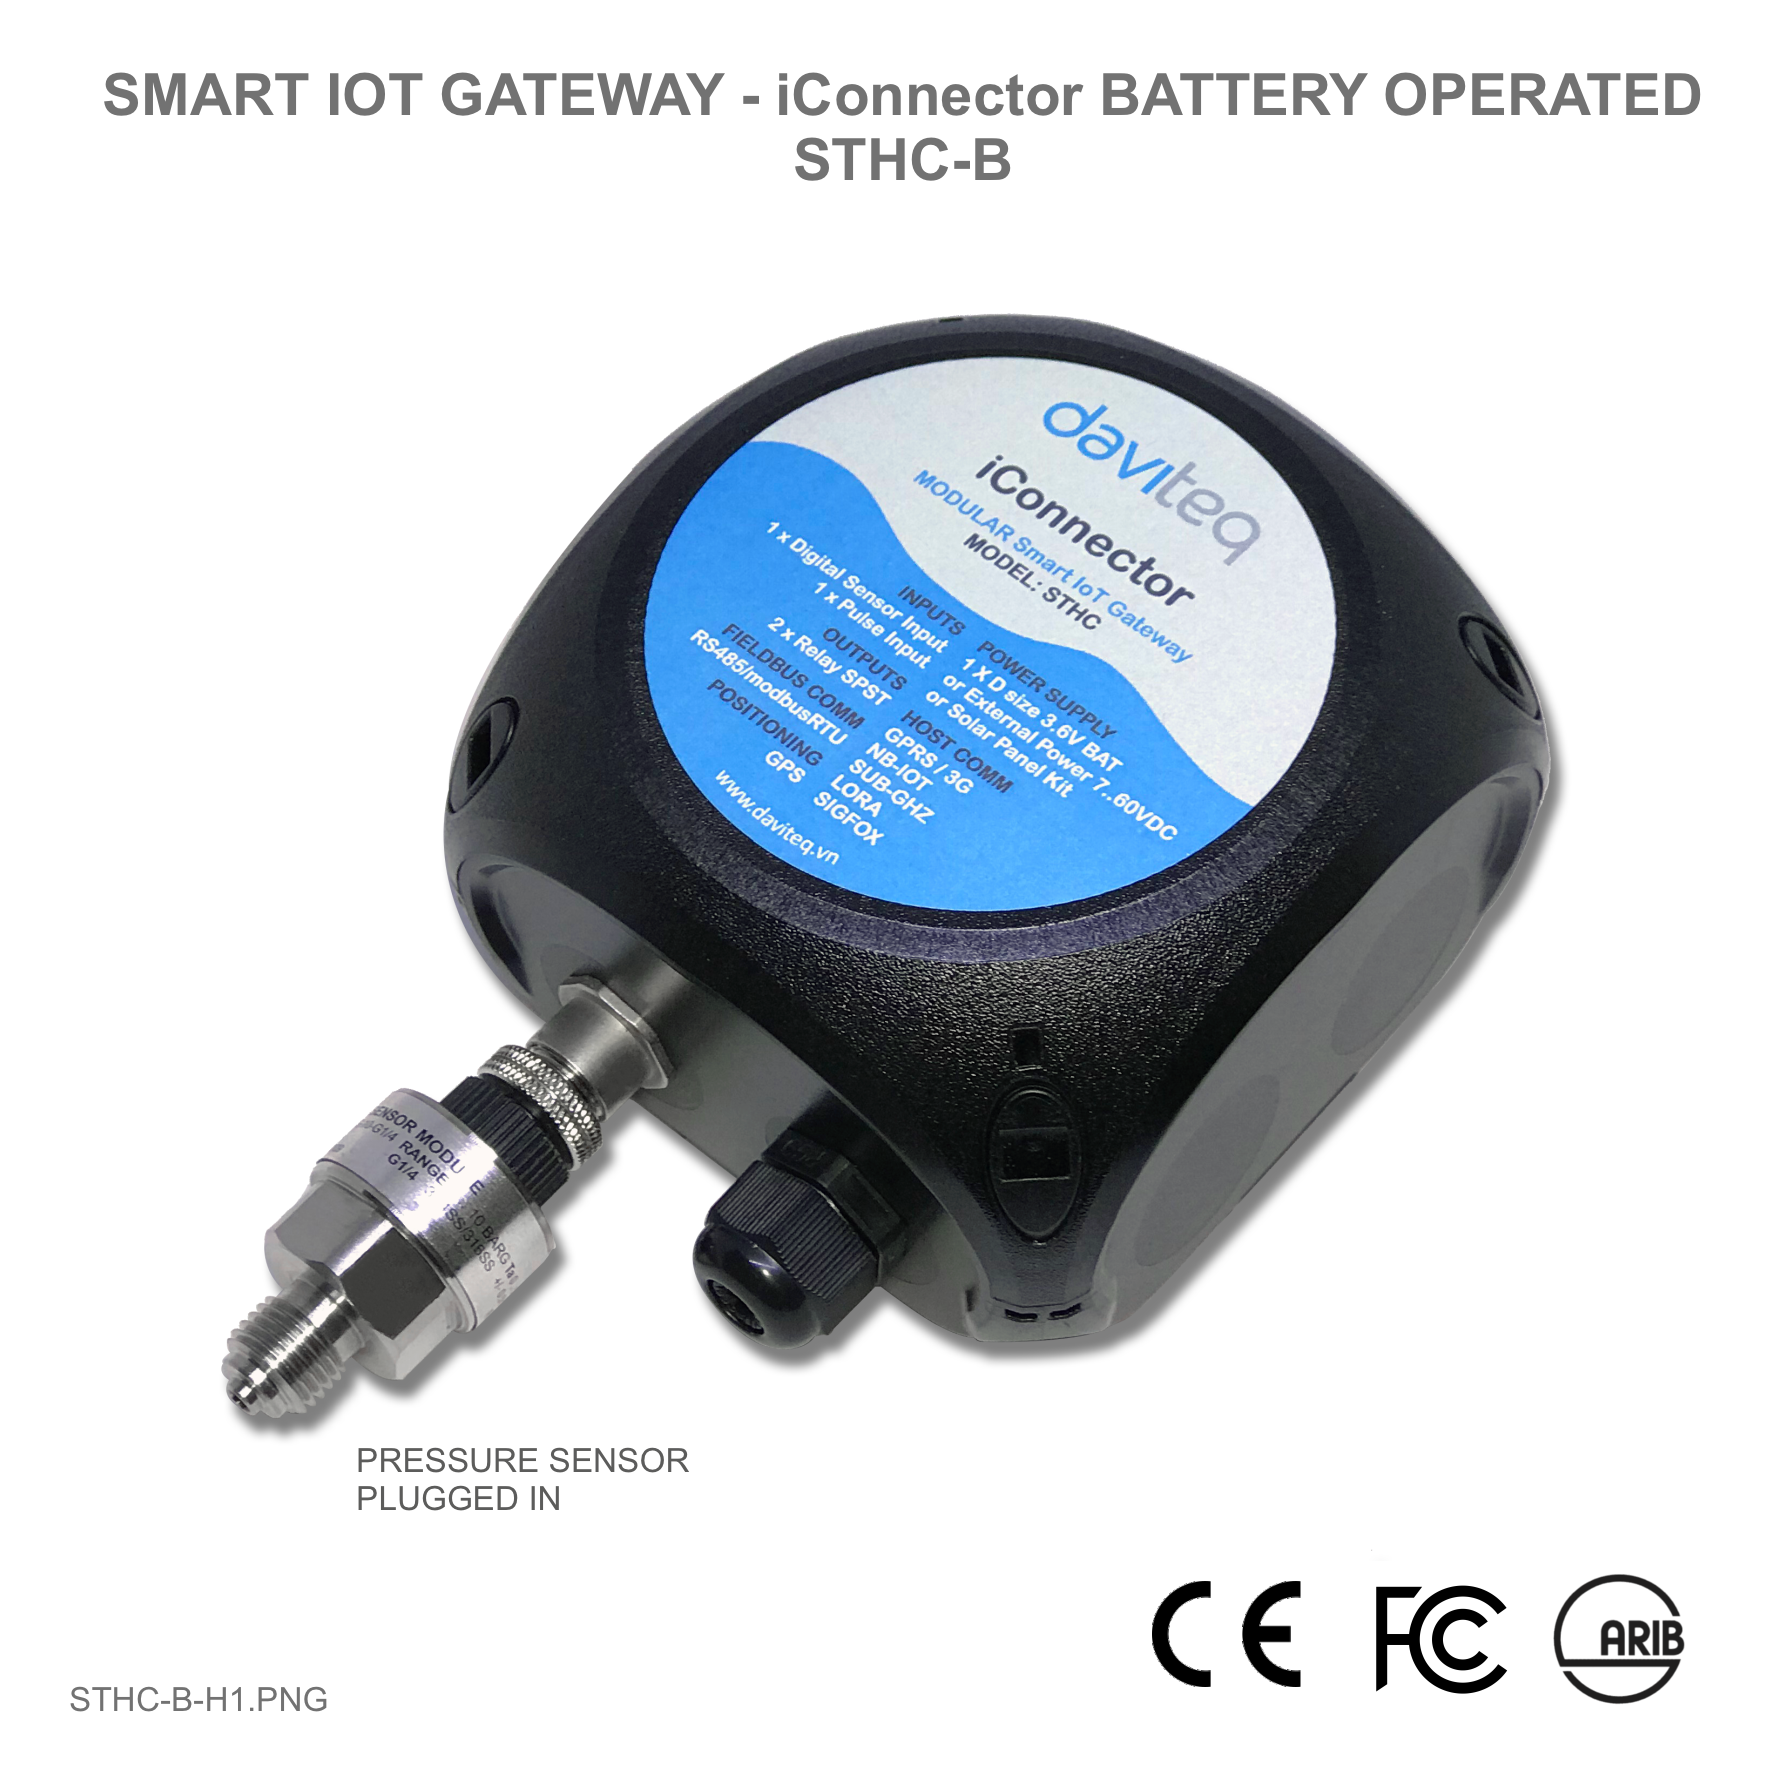 Smart IoT Gateway - iConnector Battery operated